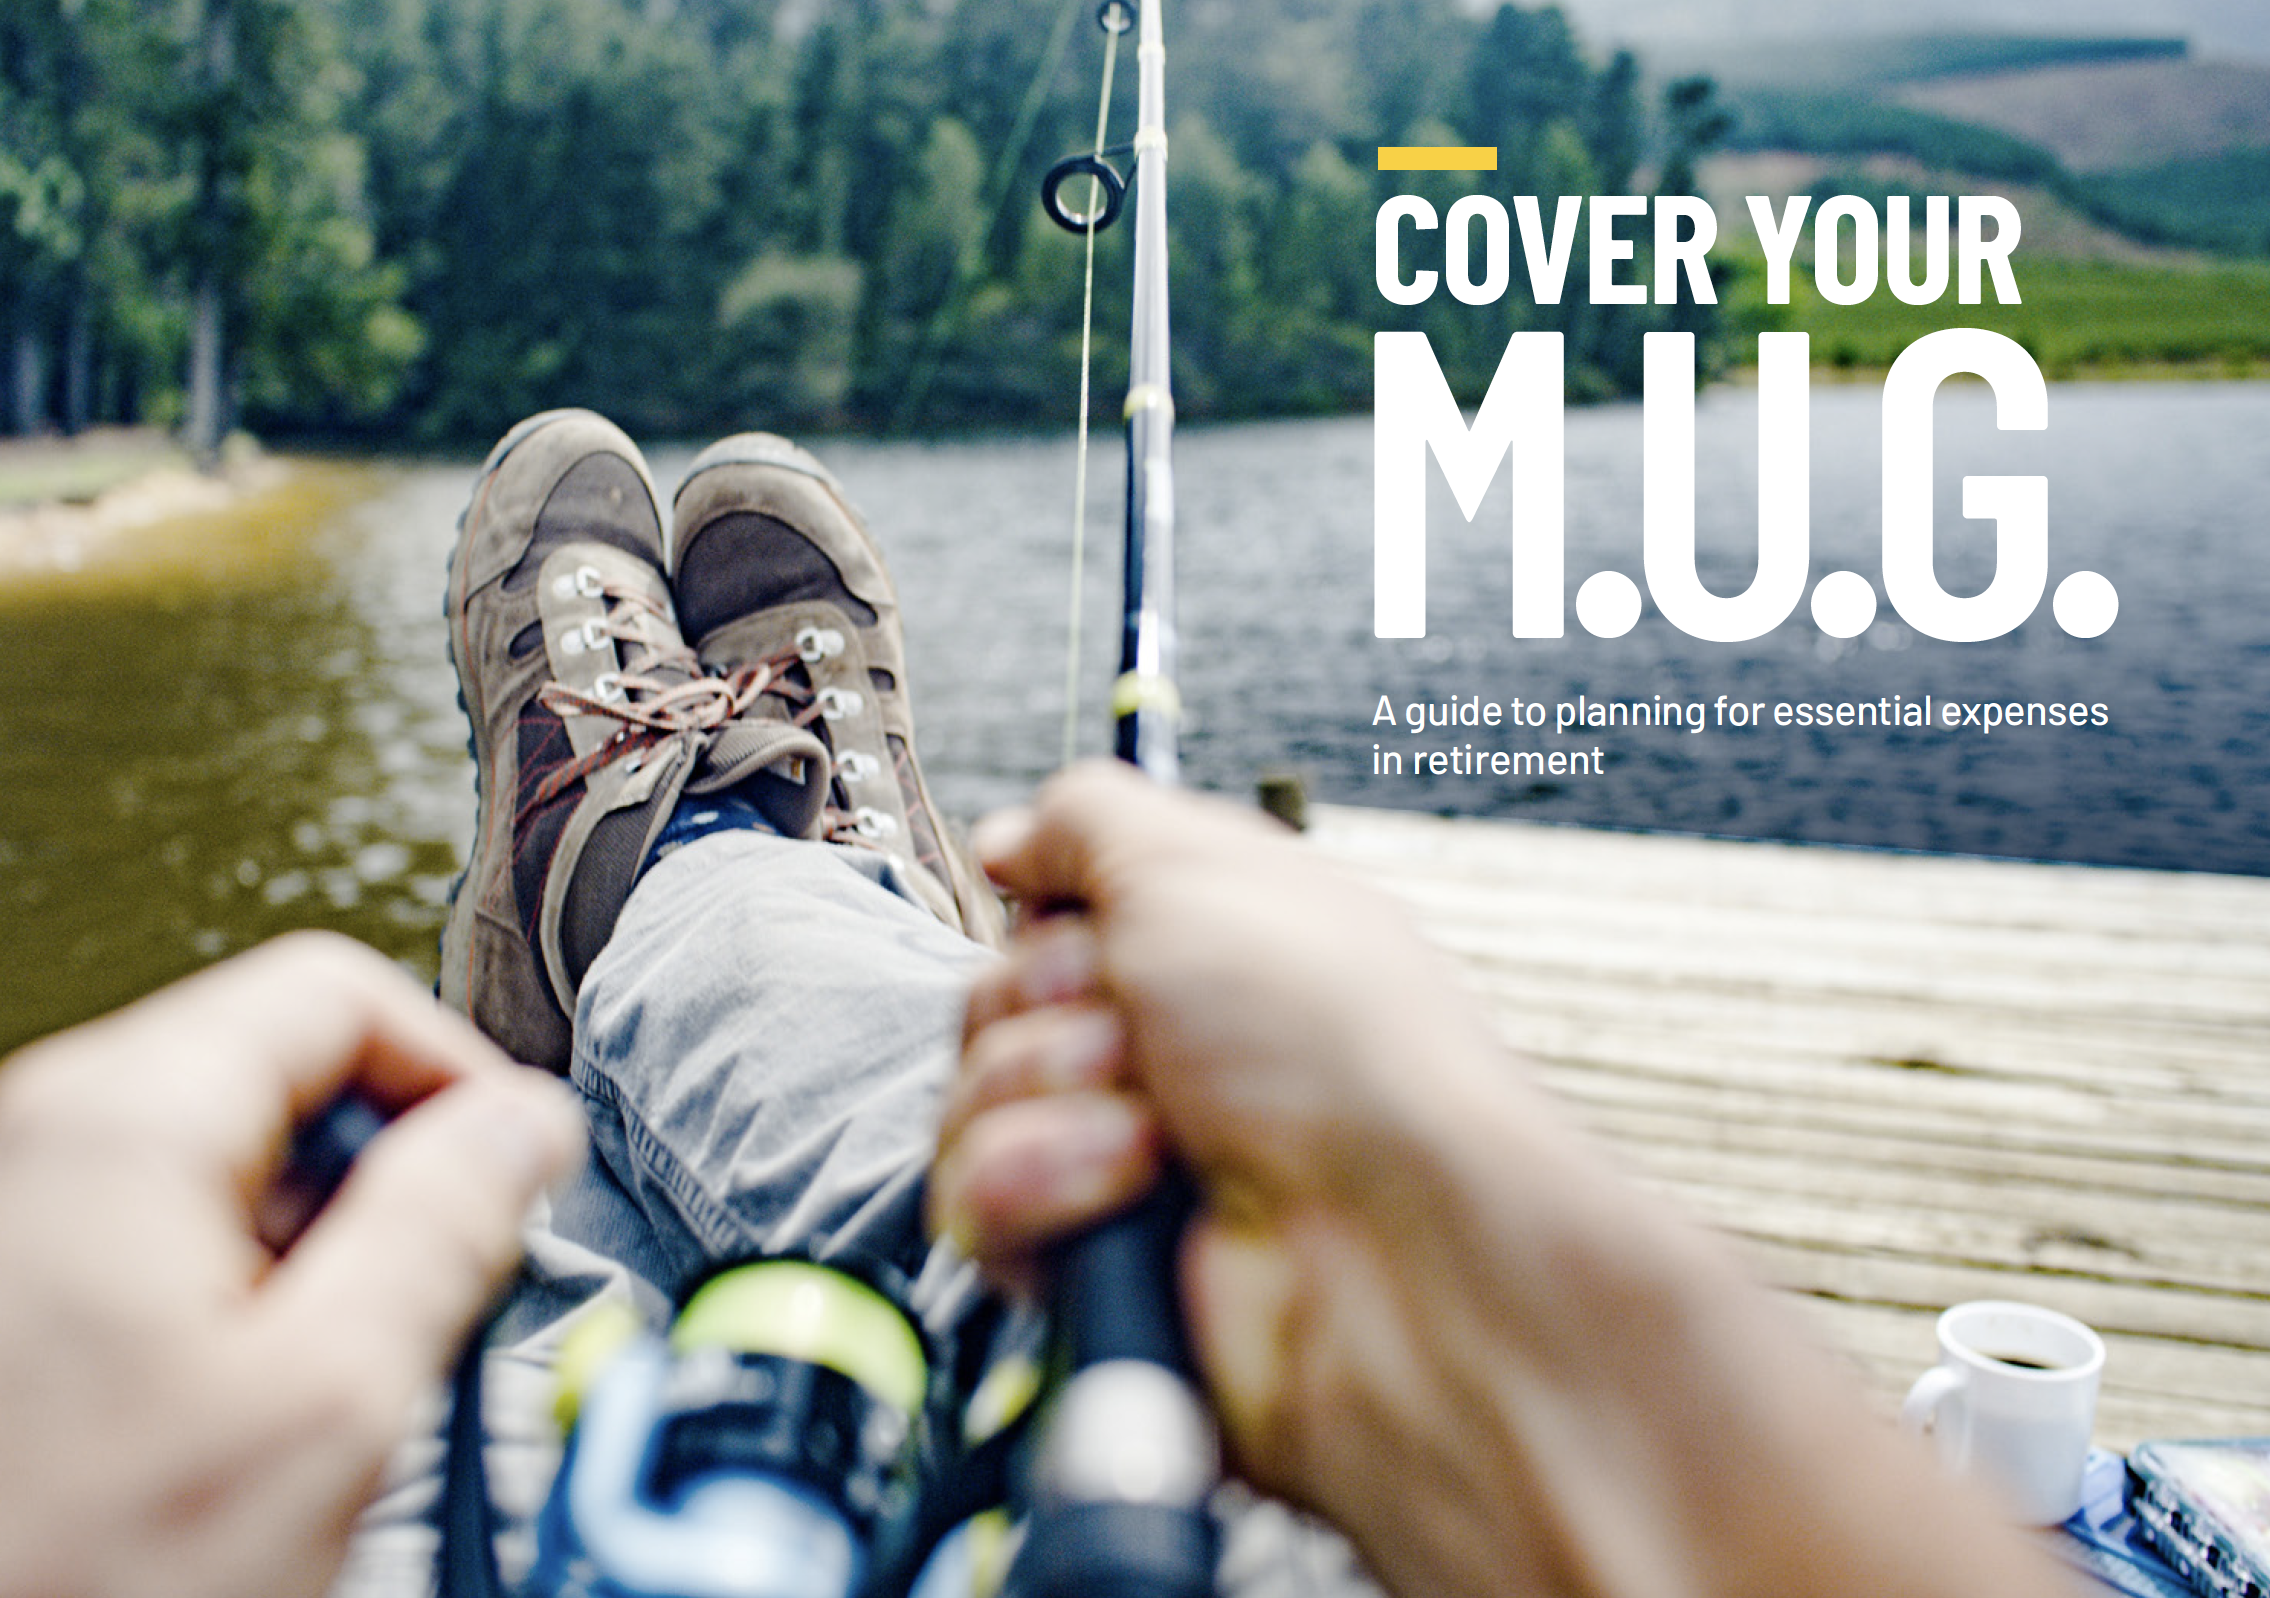 Cover your M.U.G. with the Alliance for Lifetime Income